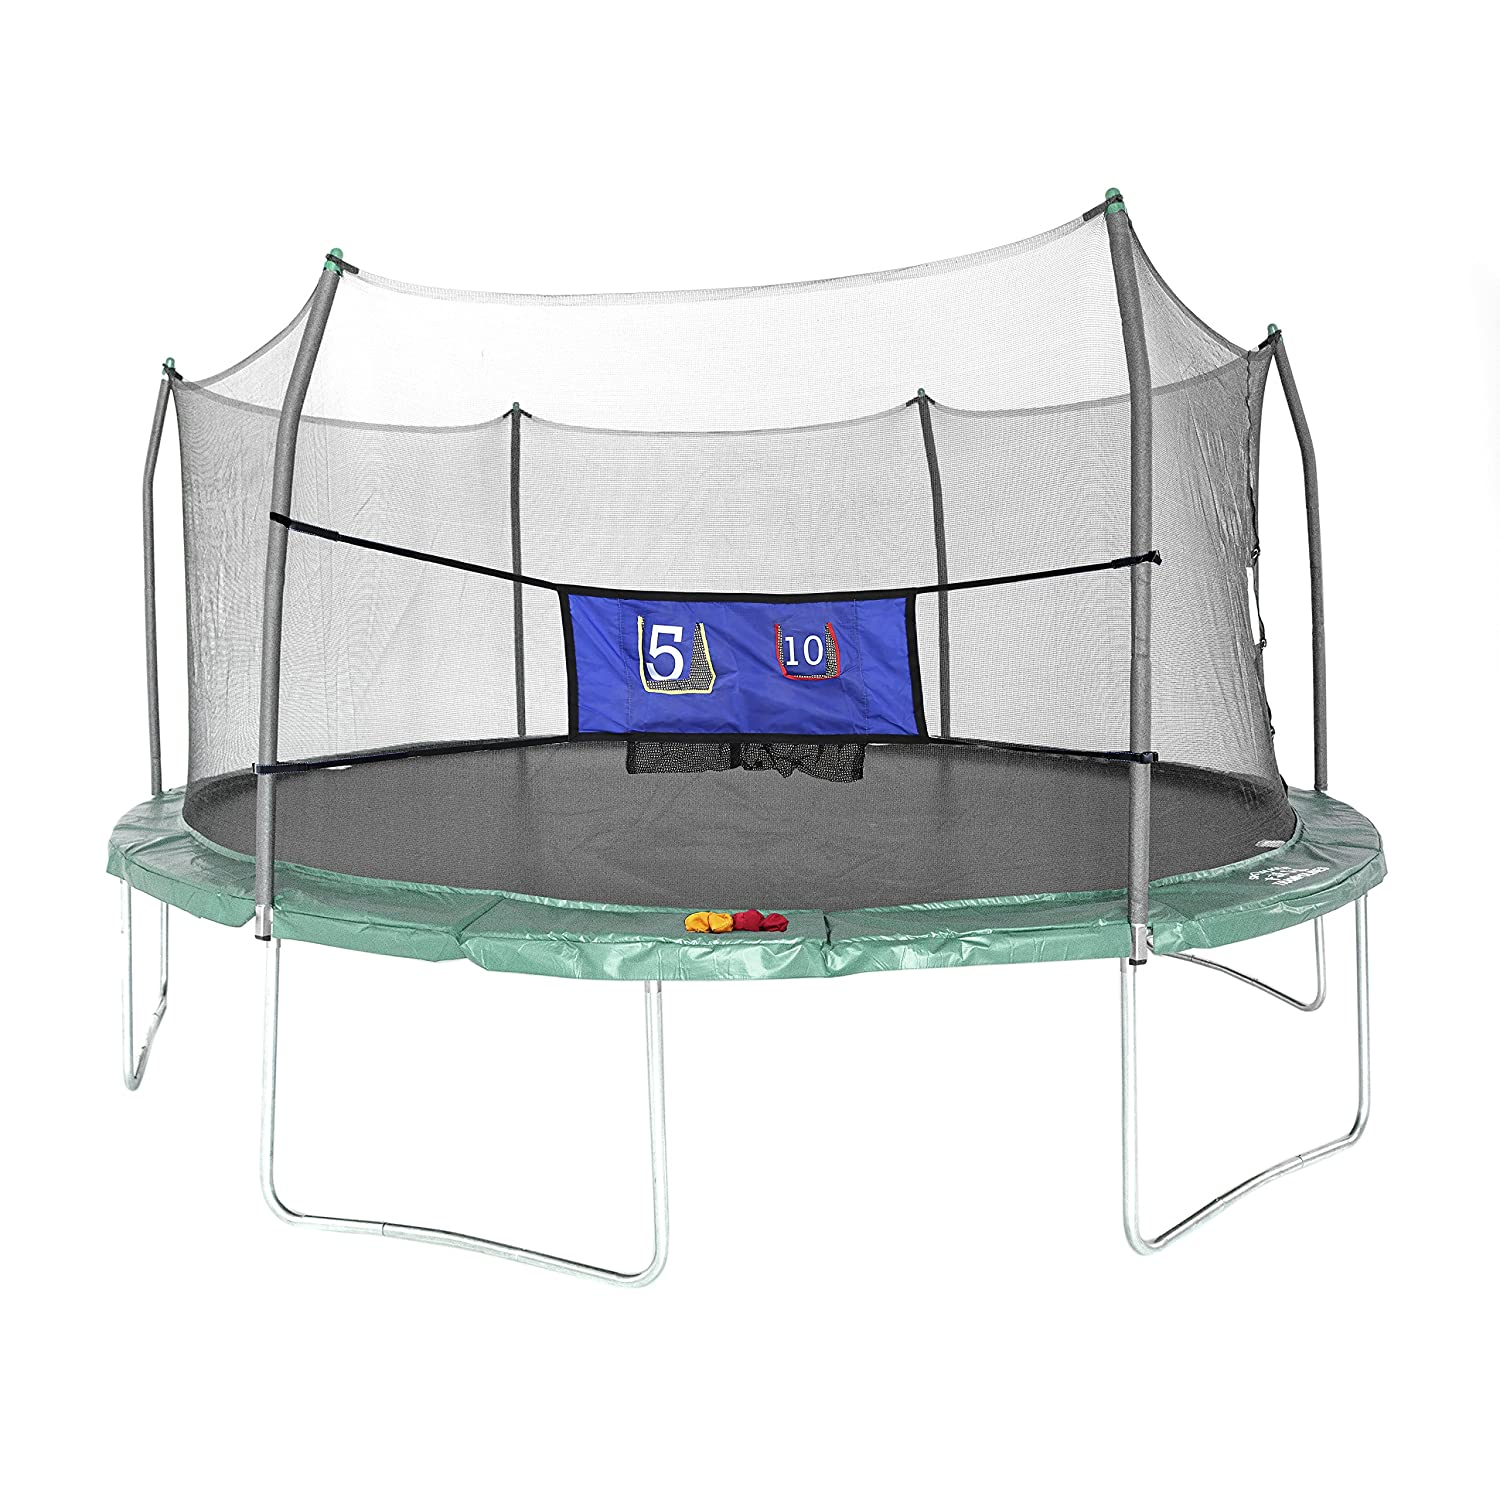 Amazon.com: Skywalker trampolines Oval cama elástica con ...